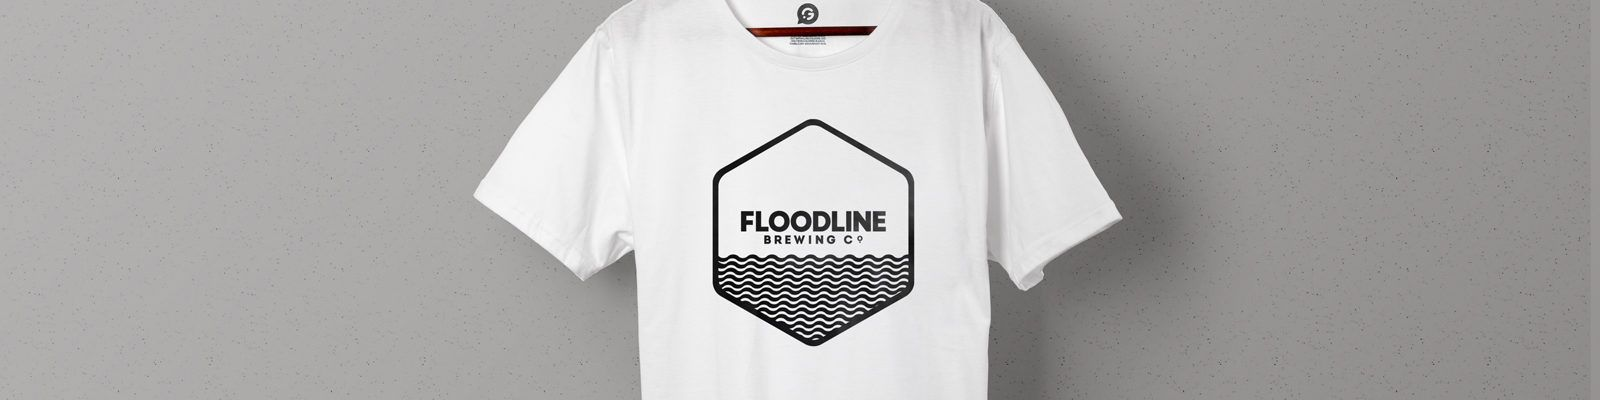 Promotional Printed T-Shirts For Floodline Brewing Co. - Header Image